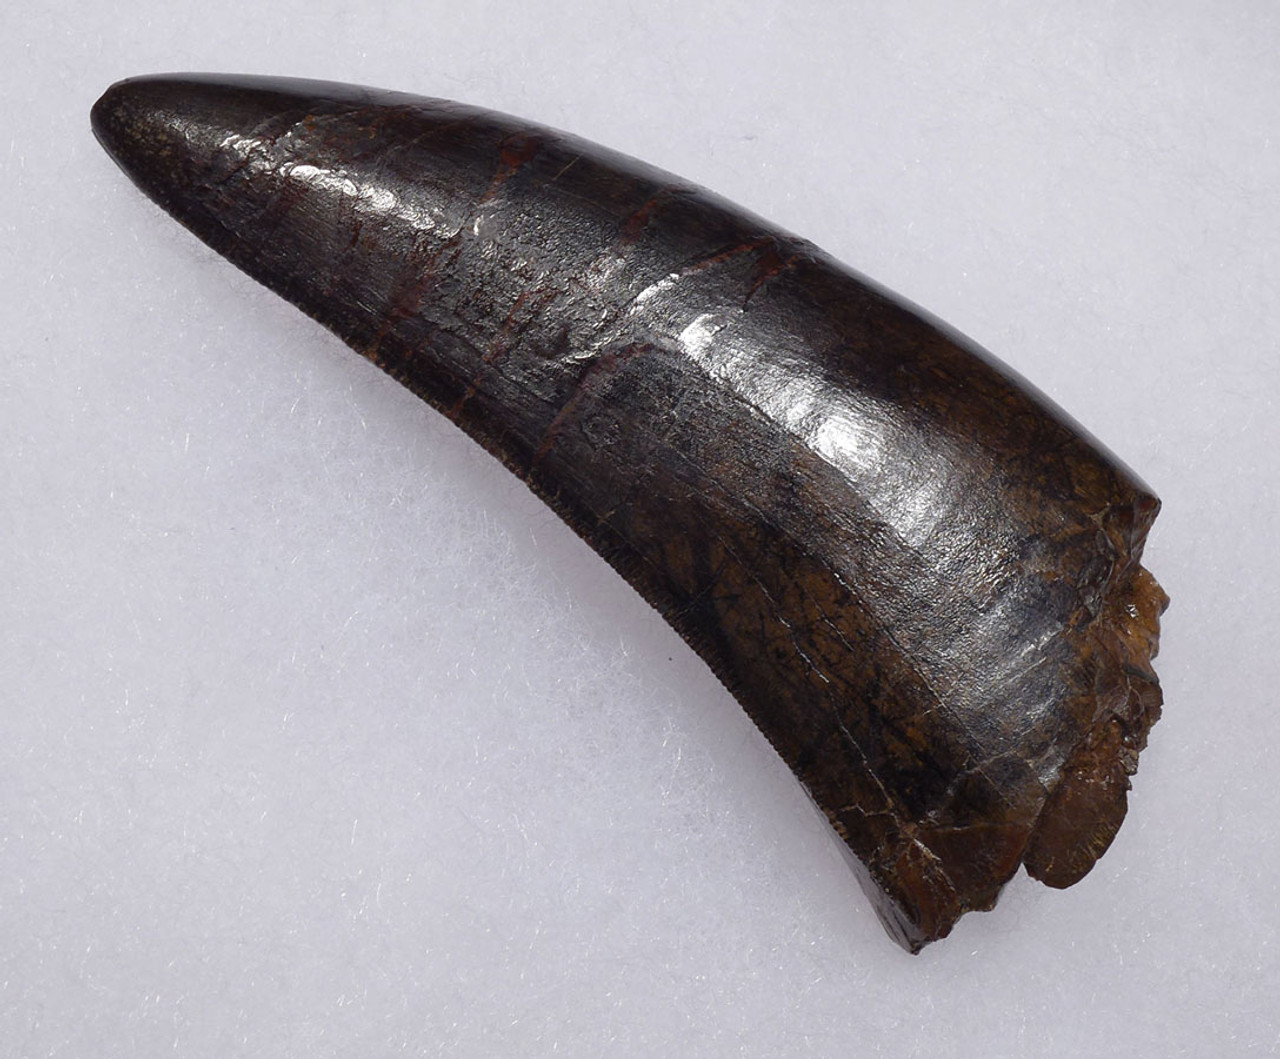 ULTRA RARE 3.65 INCH LARGE INVESTMENT GRADE TYRANNOSAURUS REX TOOTH FROM A MAXIMUM SIZE T REX *DTX1802